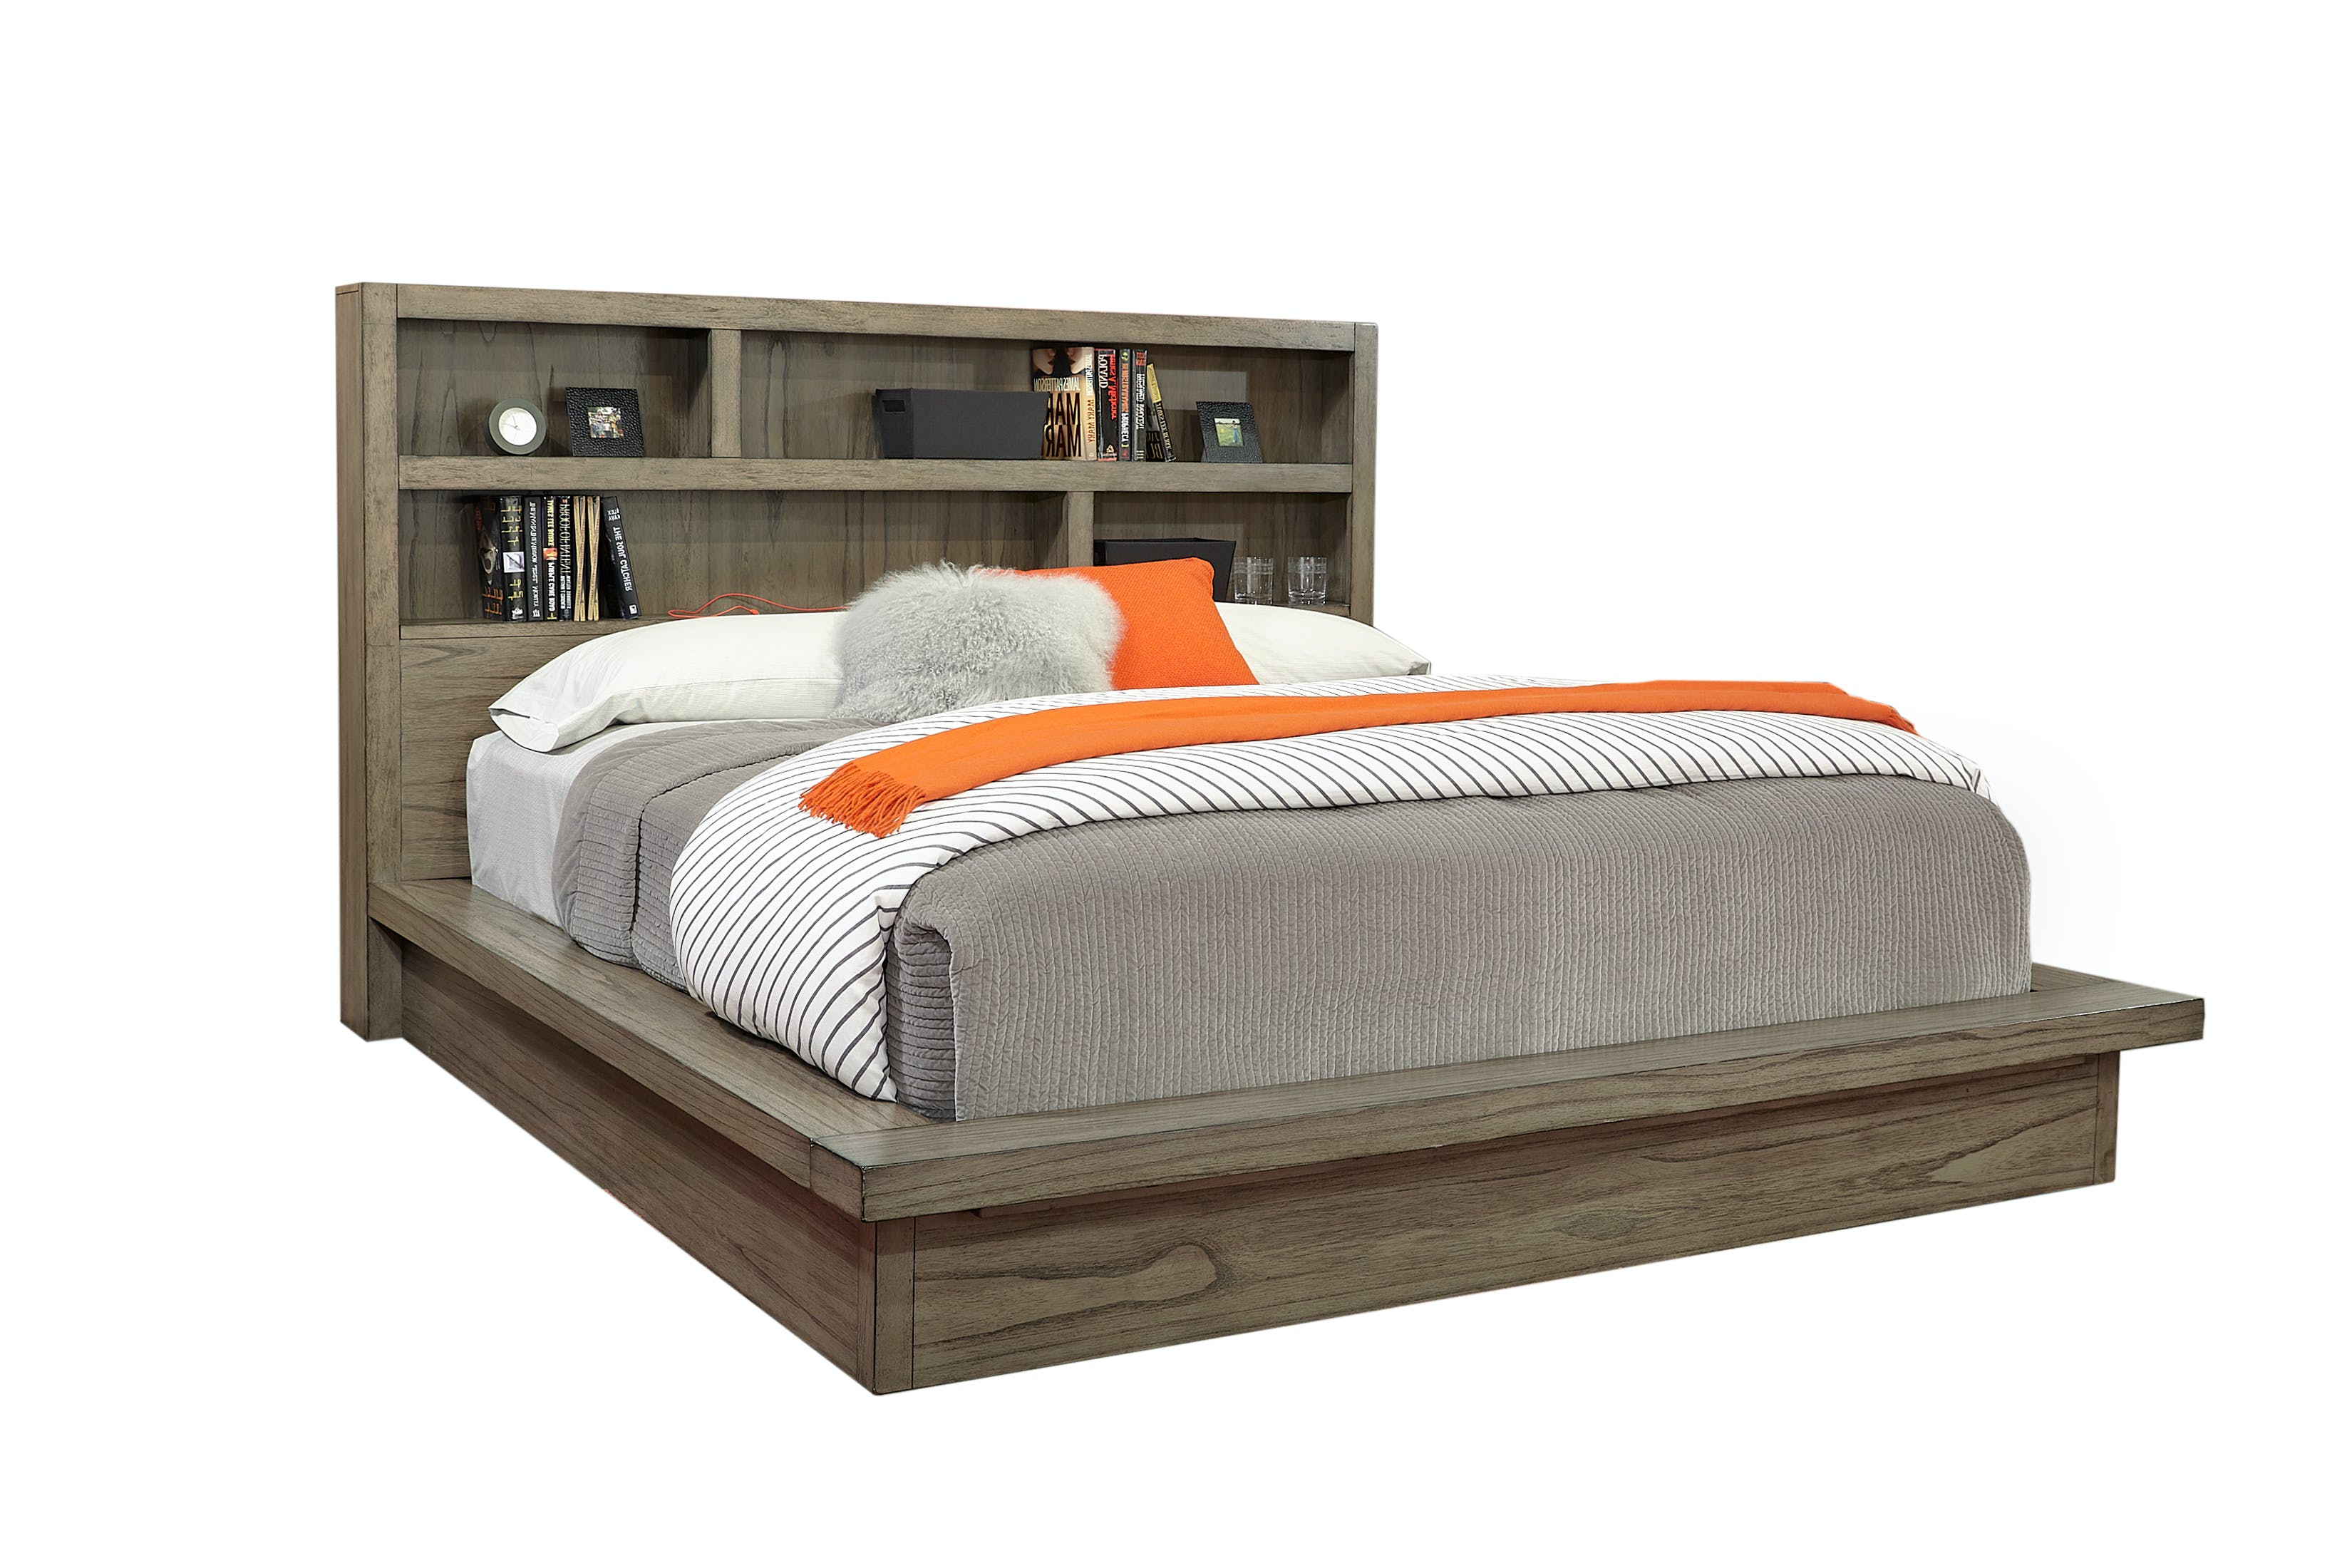 Aspenhome Bedroom Queen Platform Bed Non Storage Iml 471 Gry 473 Gry 472 Gry Stacy Furniture